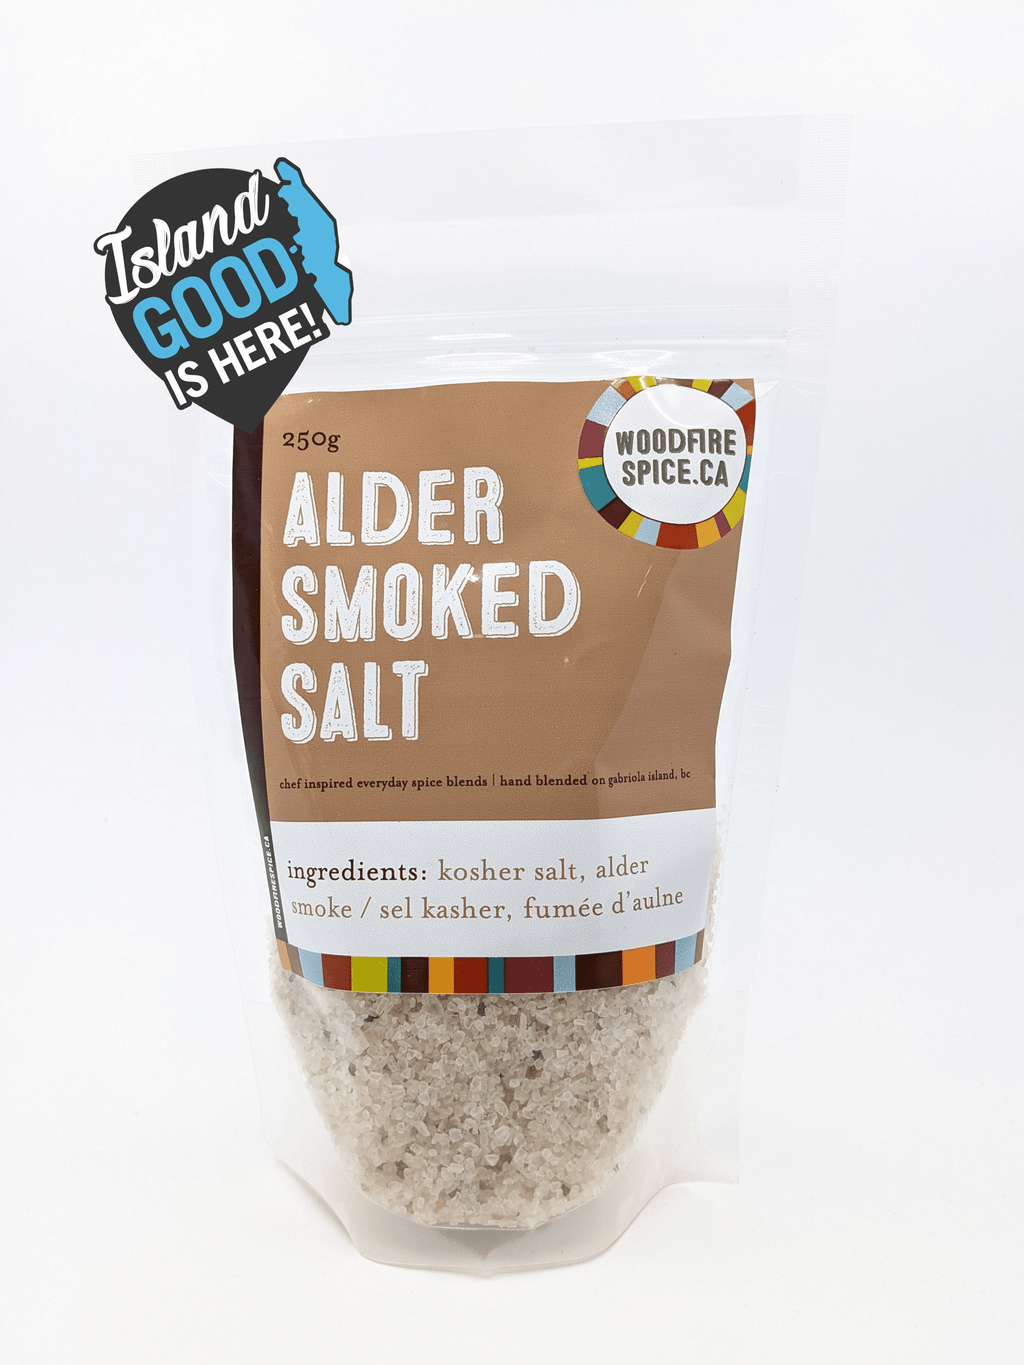 Package of Alder Smoked Salt with Island Good logo